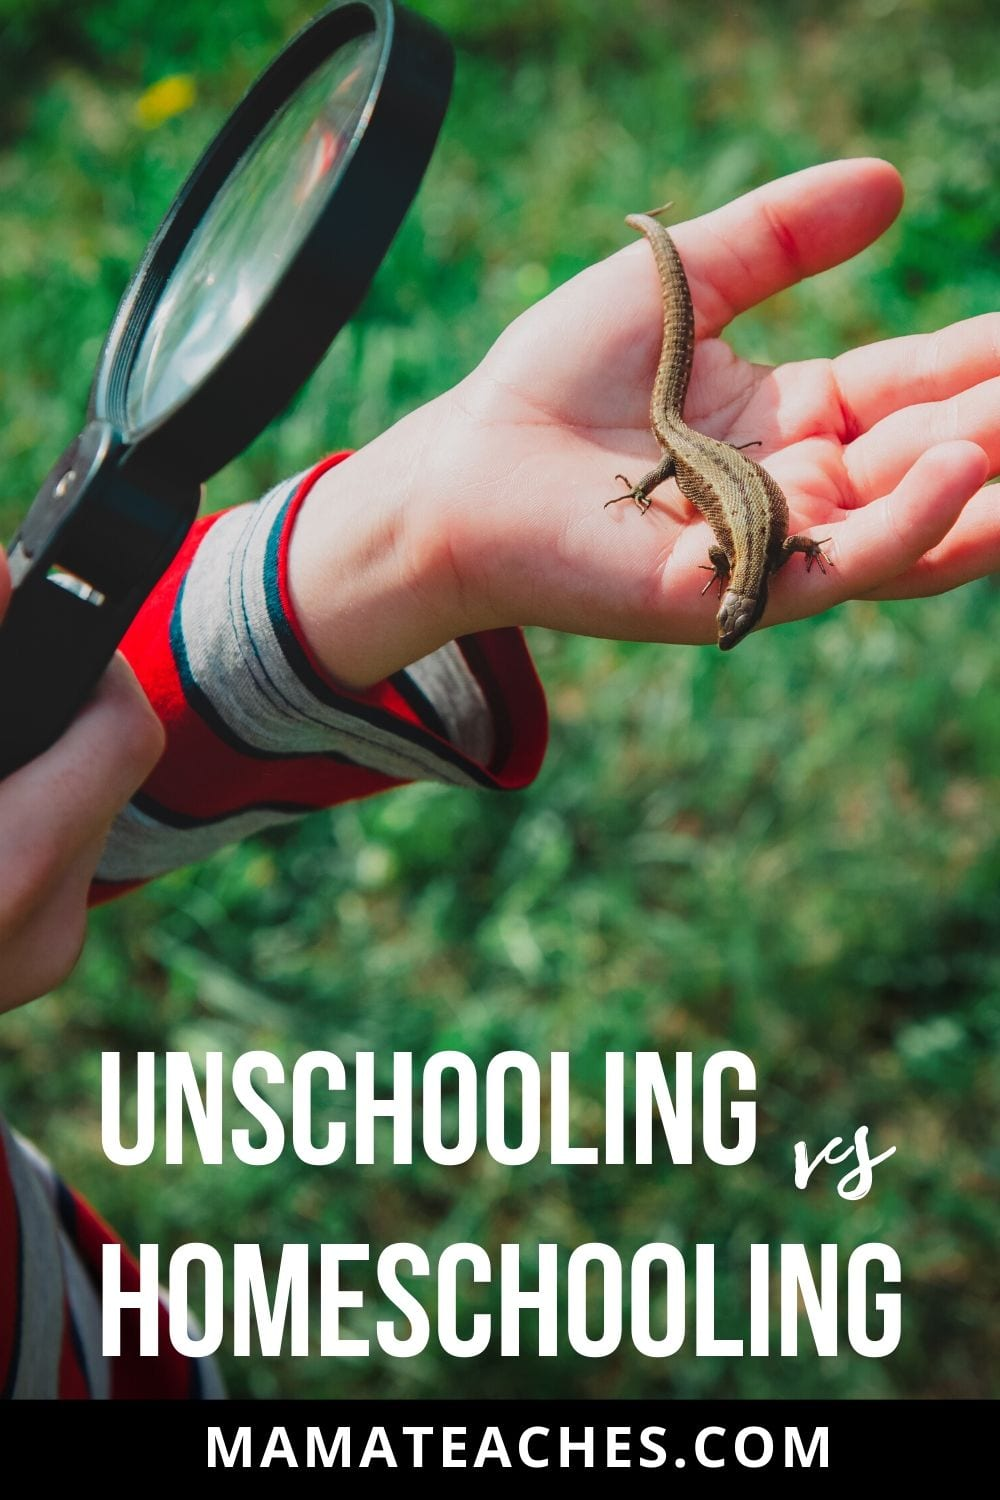 What's the Difference Between Unschooling and Homeschooling?